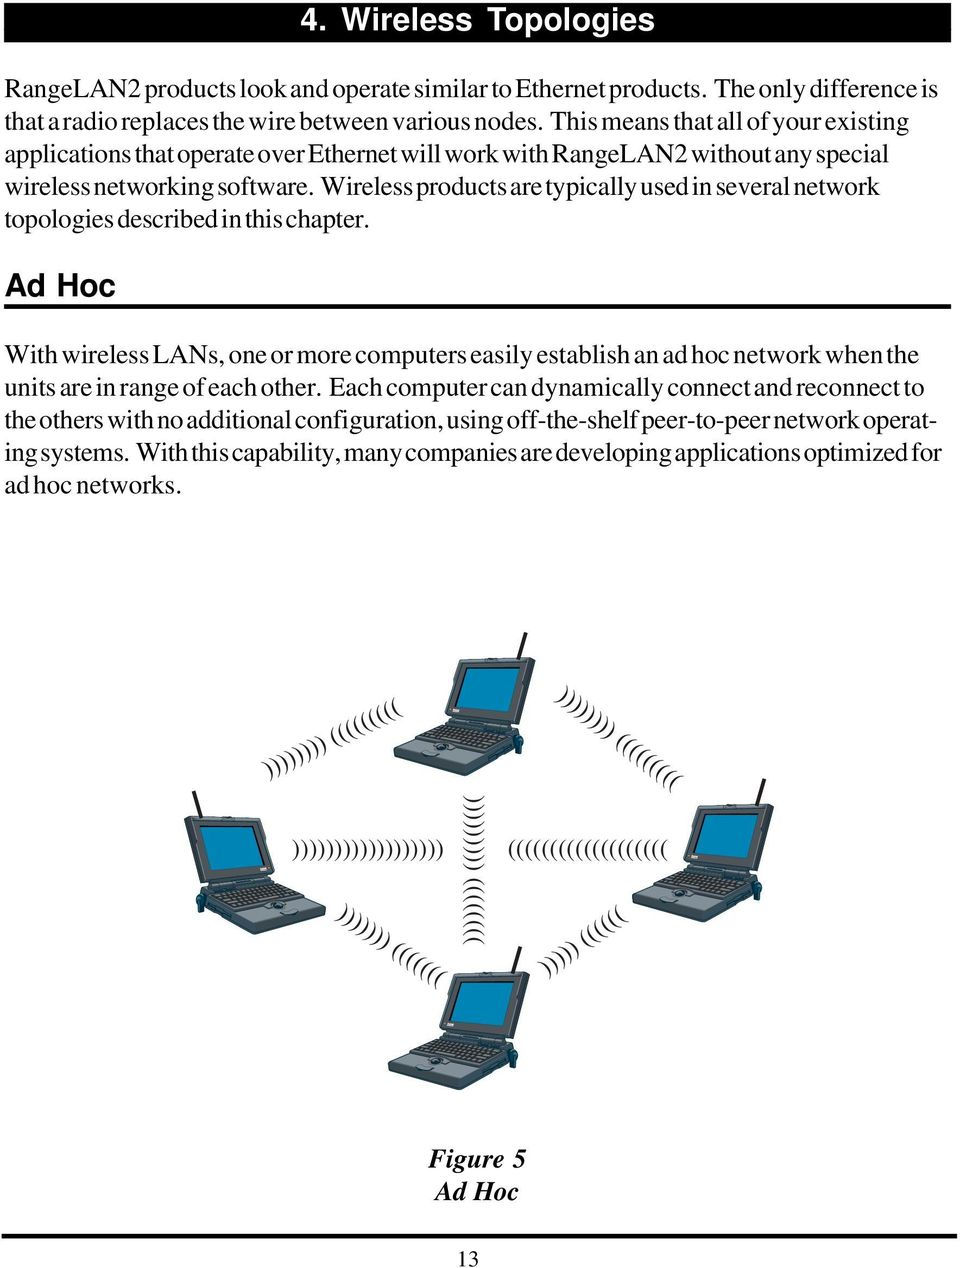 Wireless products are typically used in several network topologies described in this chapter.